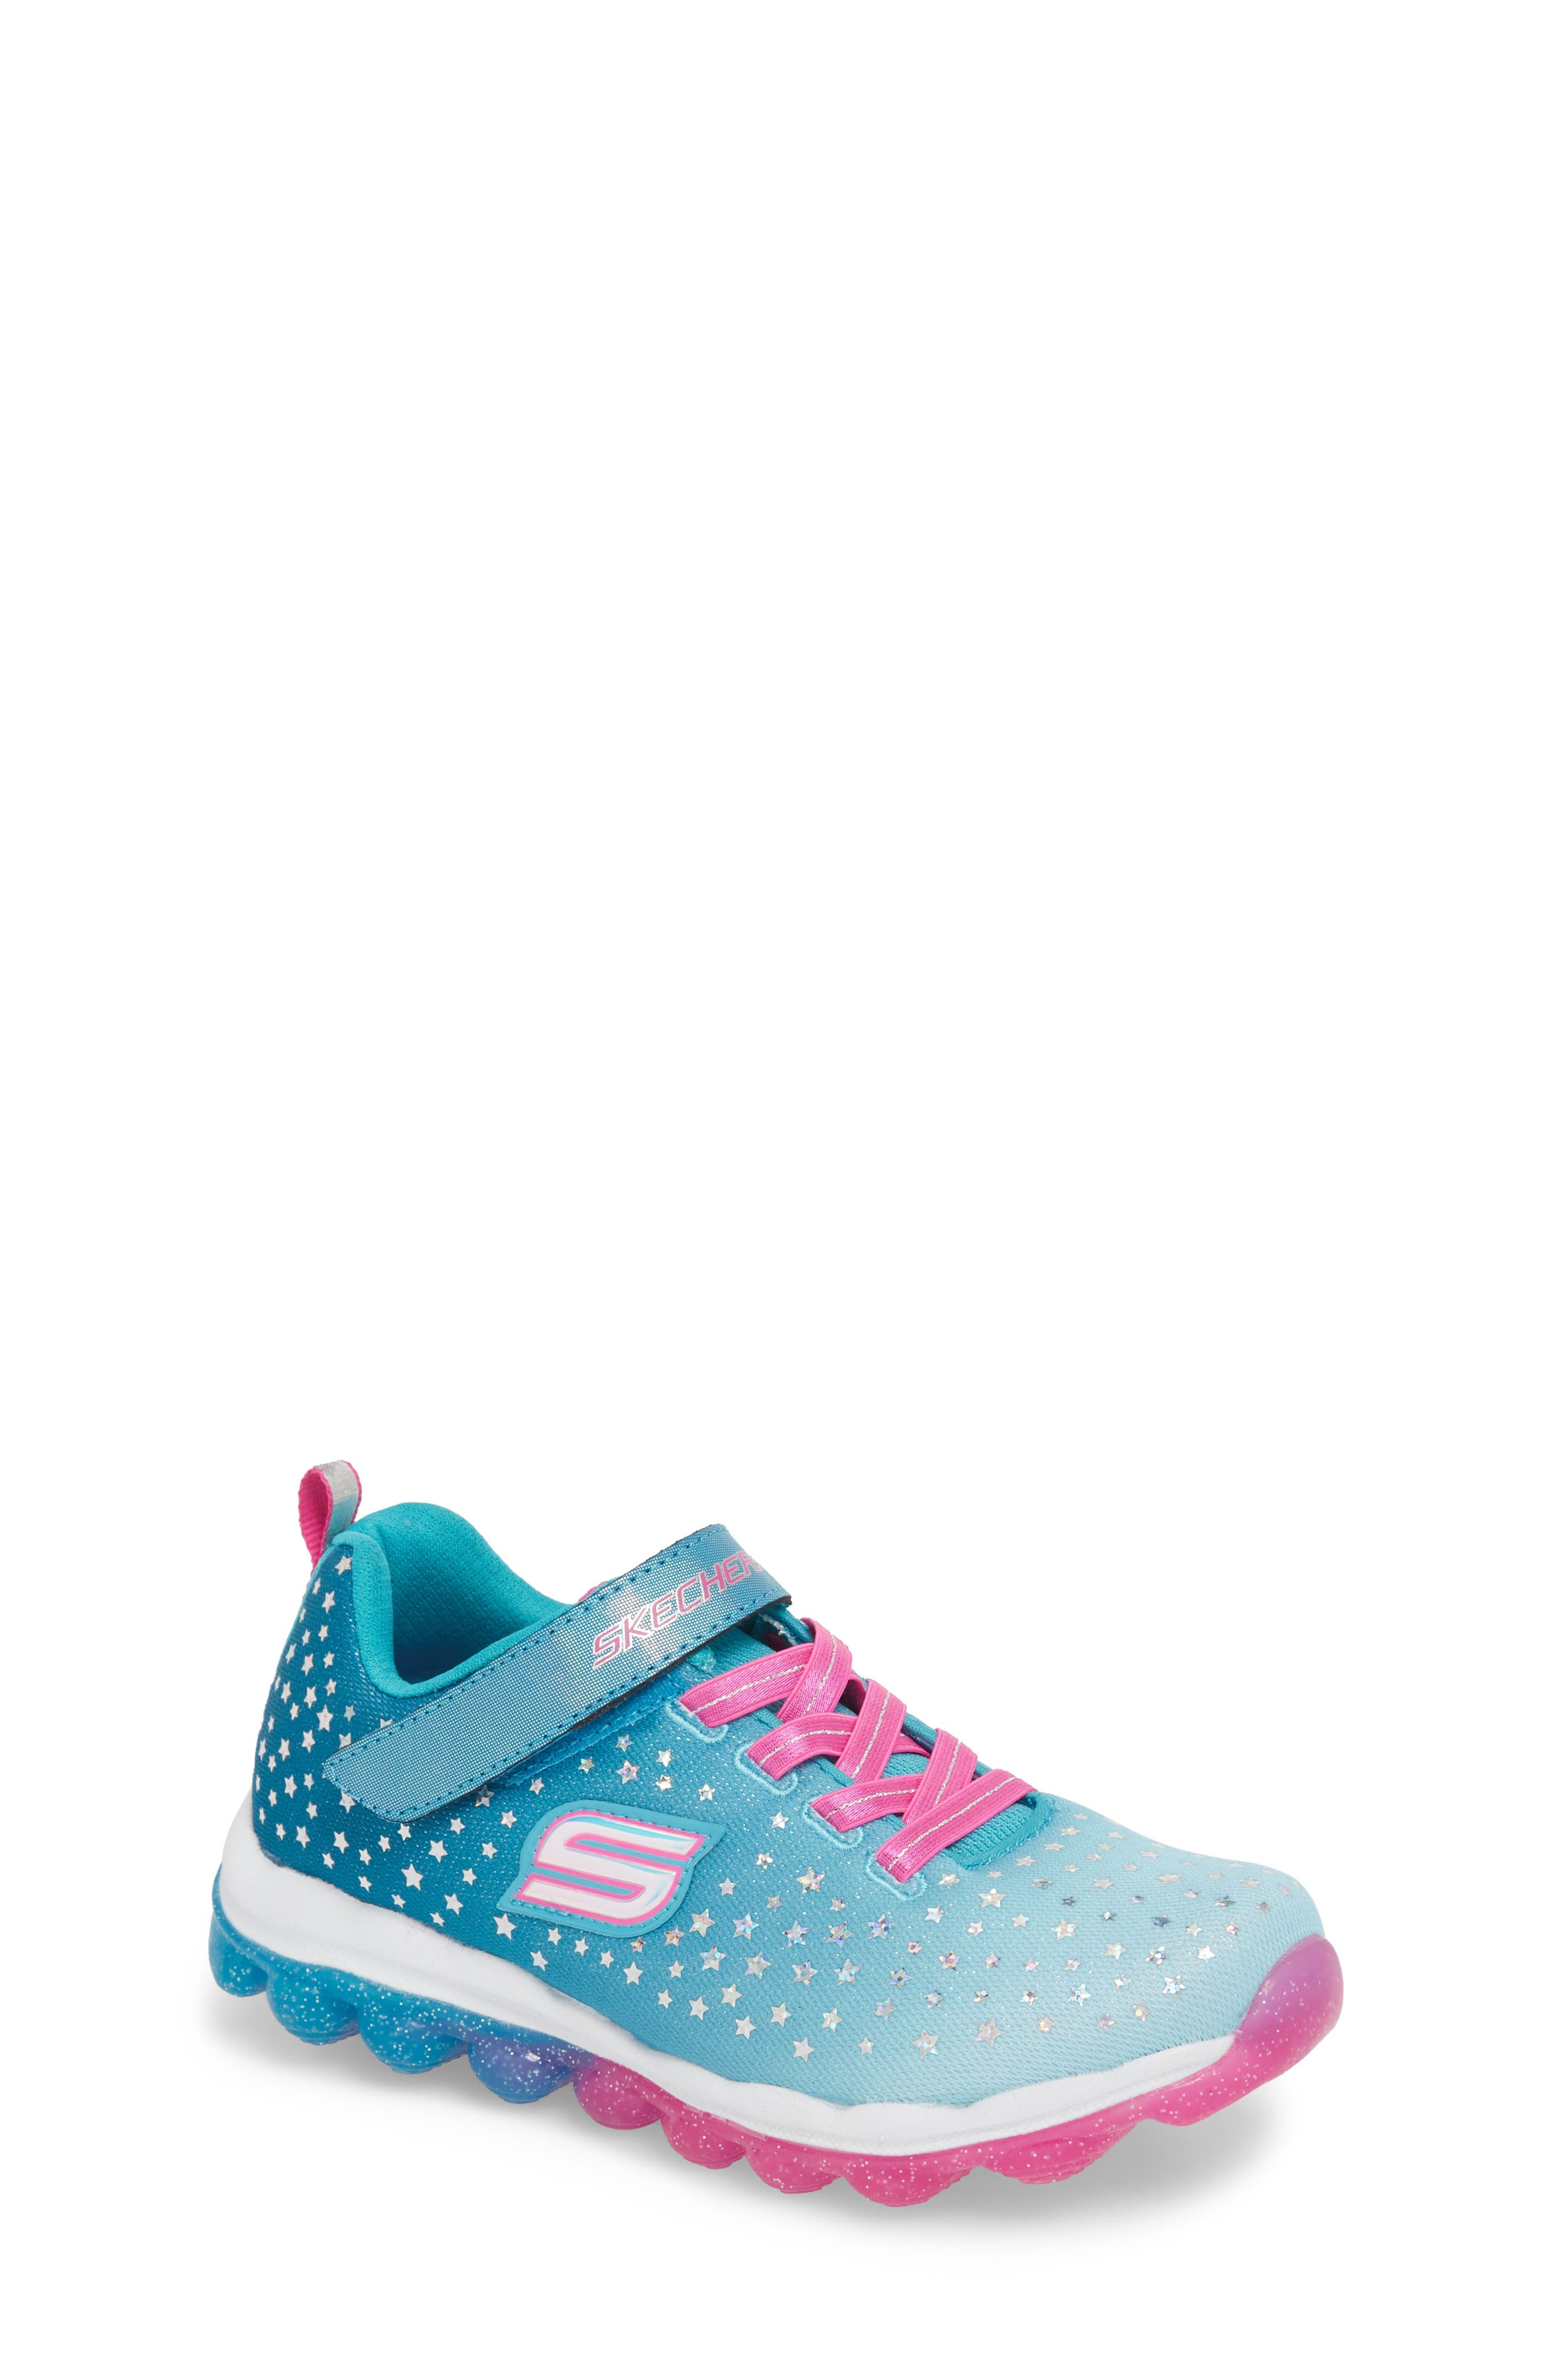 Skech-Air Ultra Glam It Up Sneaker,                         Main,                         color, 425